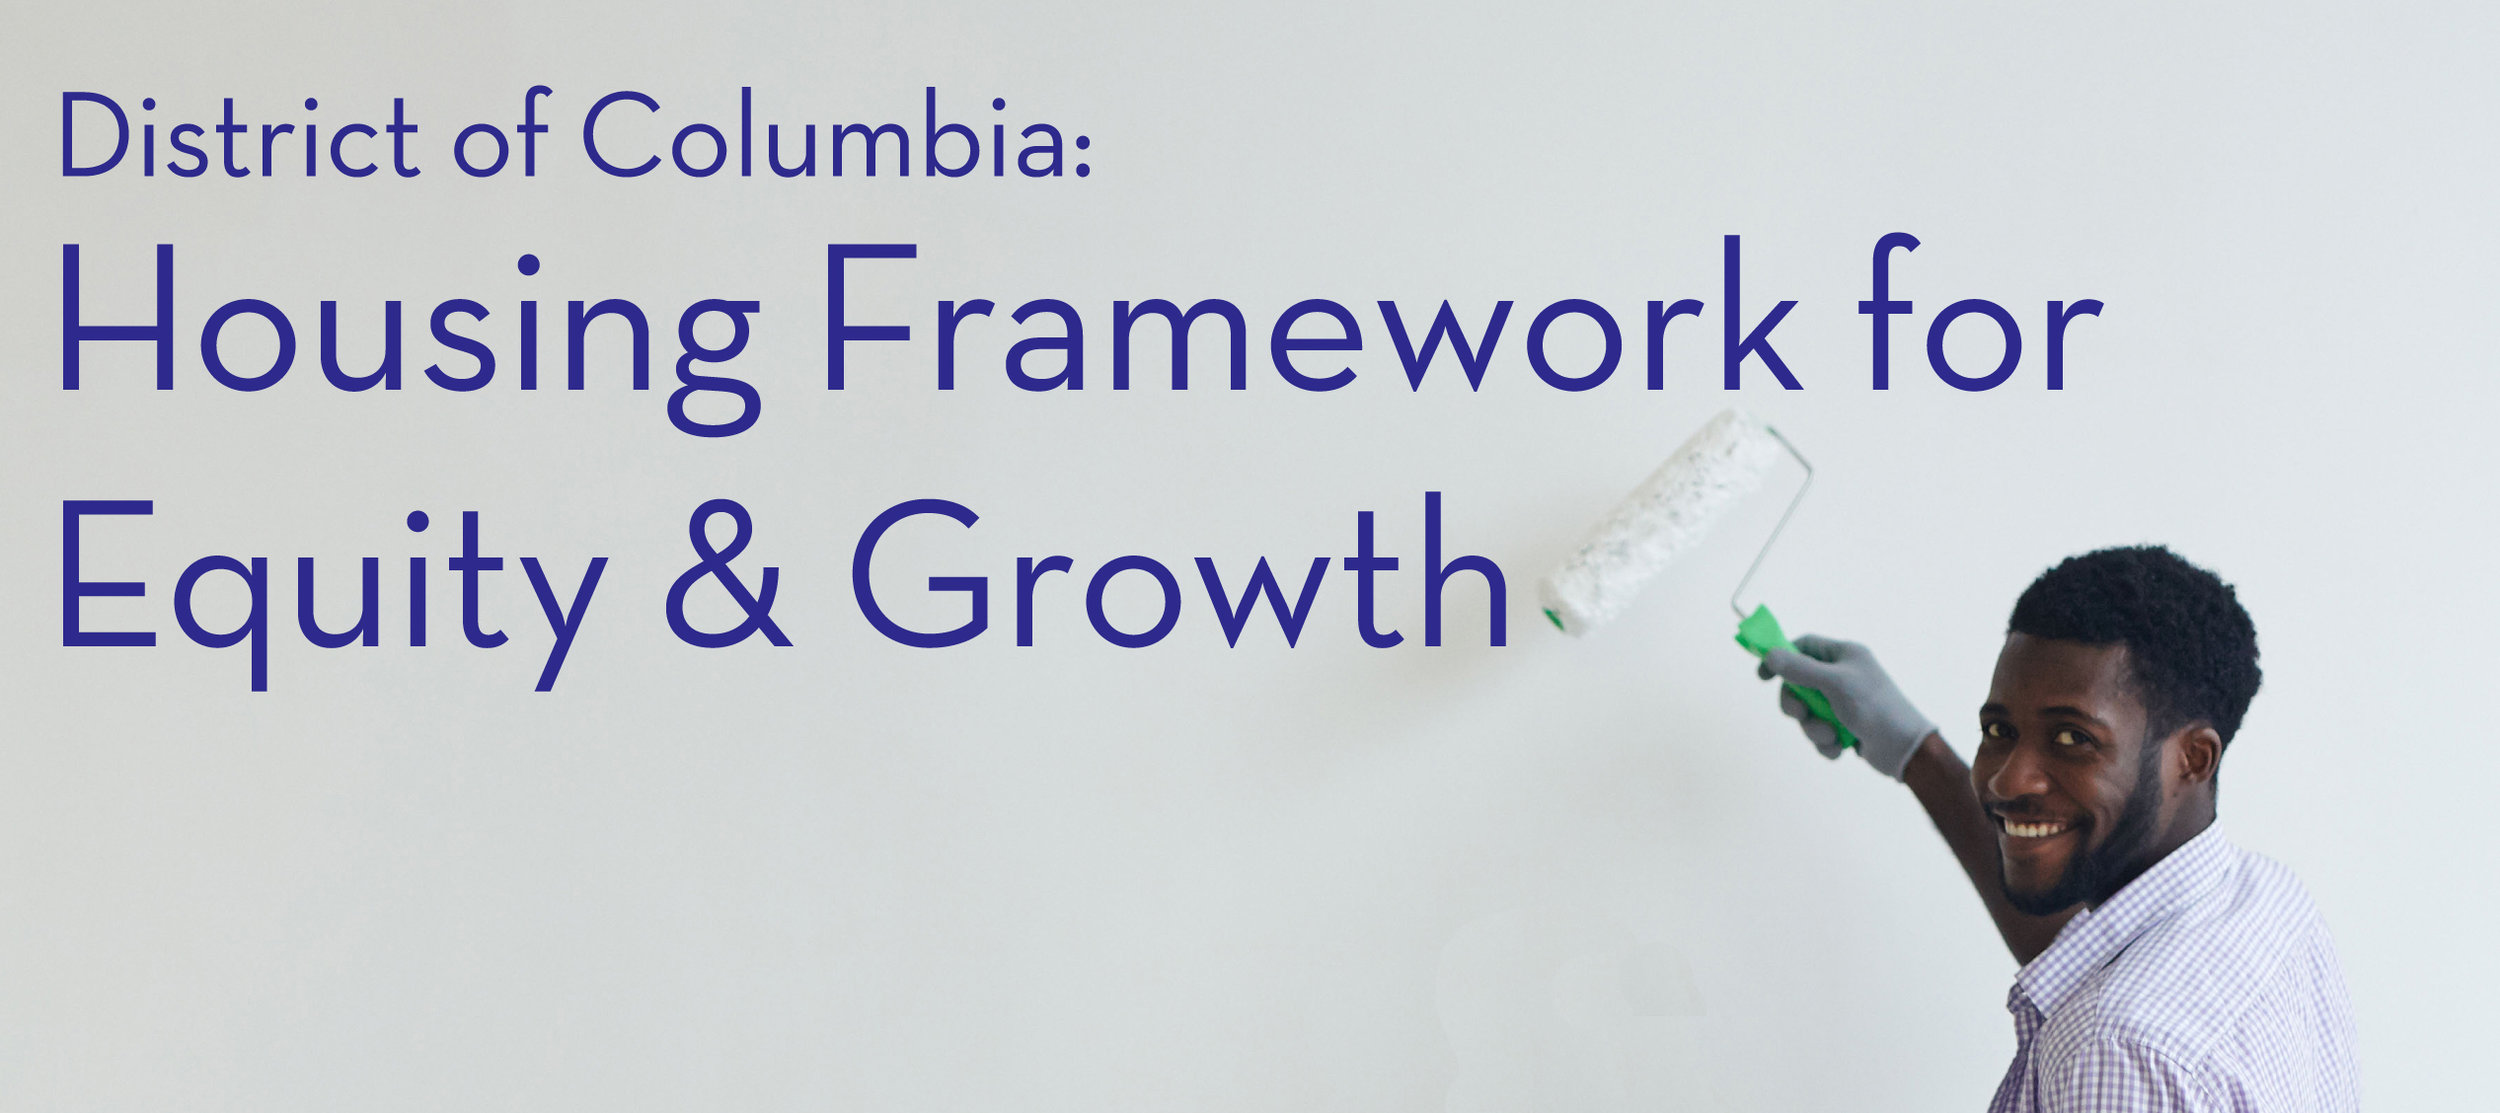 To learn more about the  Housing Framework for Equity and Growth  initiative, please visit  housingdc.dc.gov .